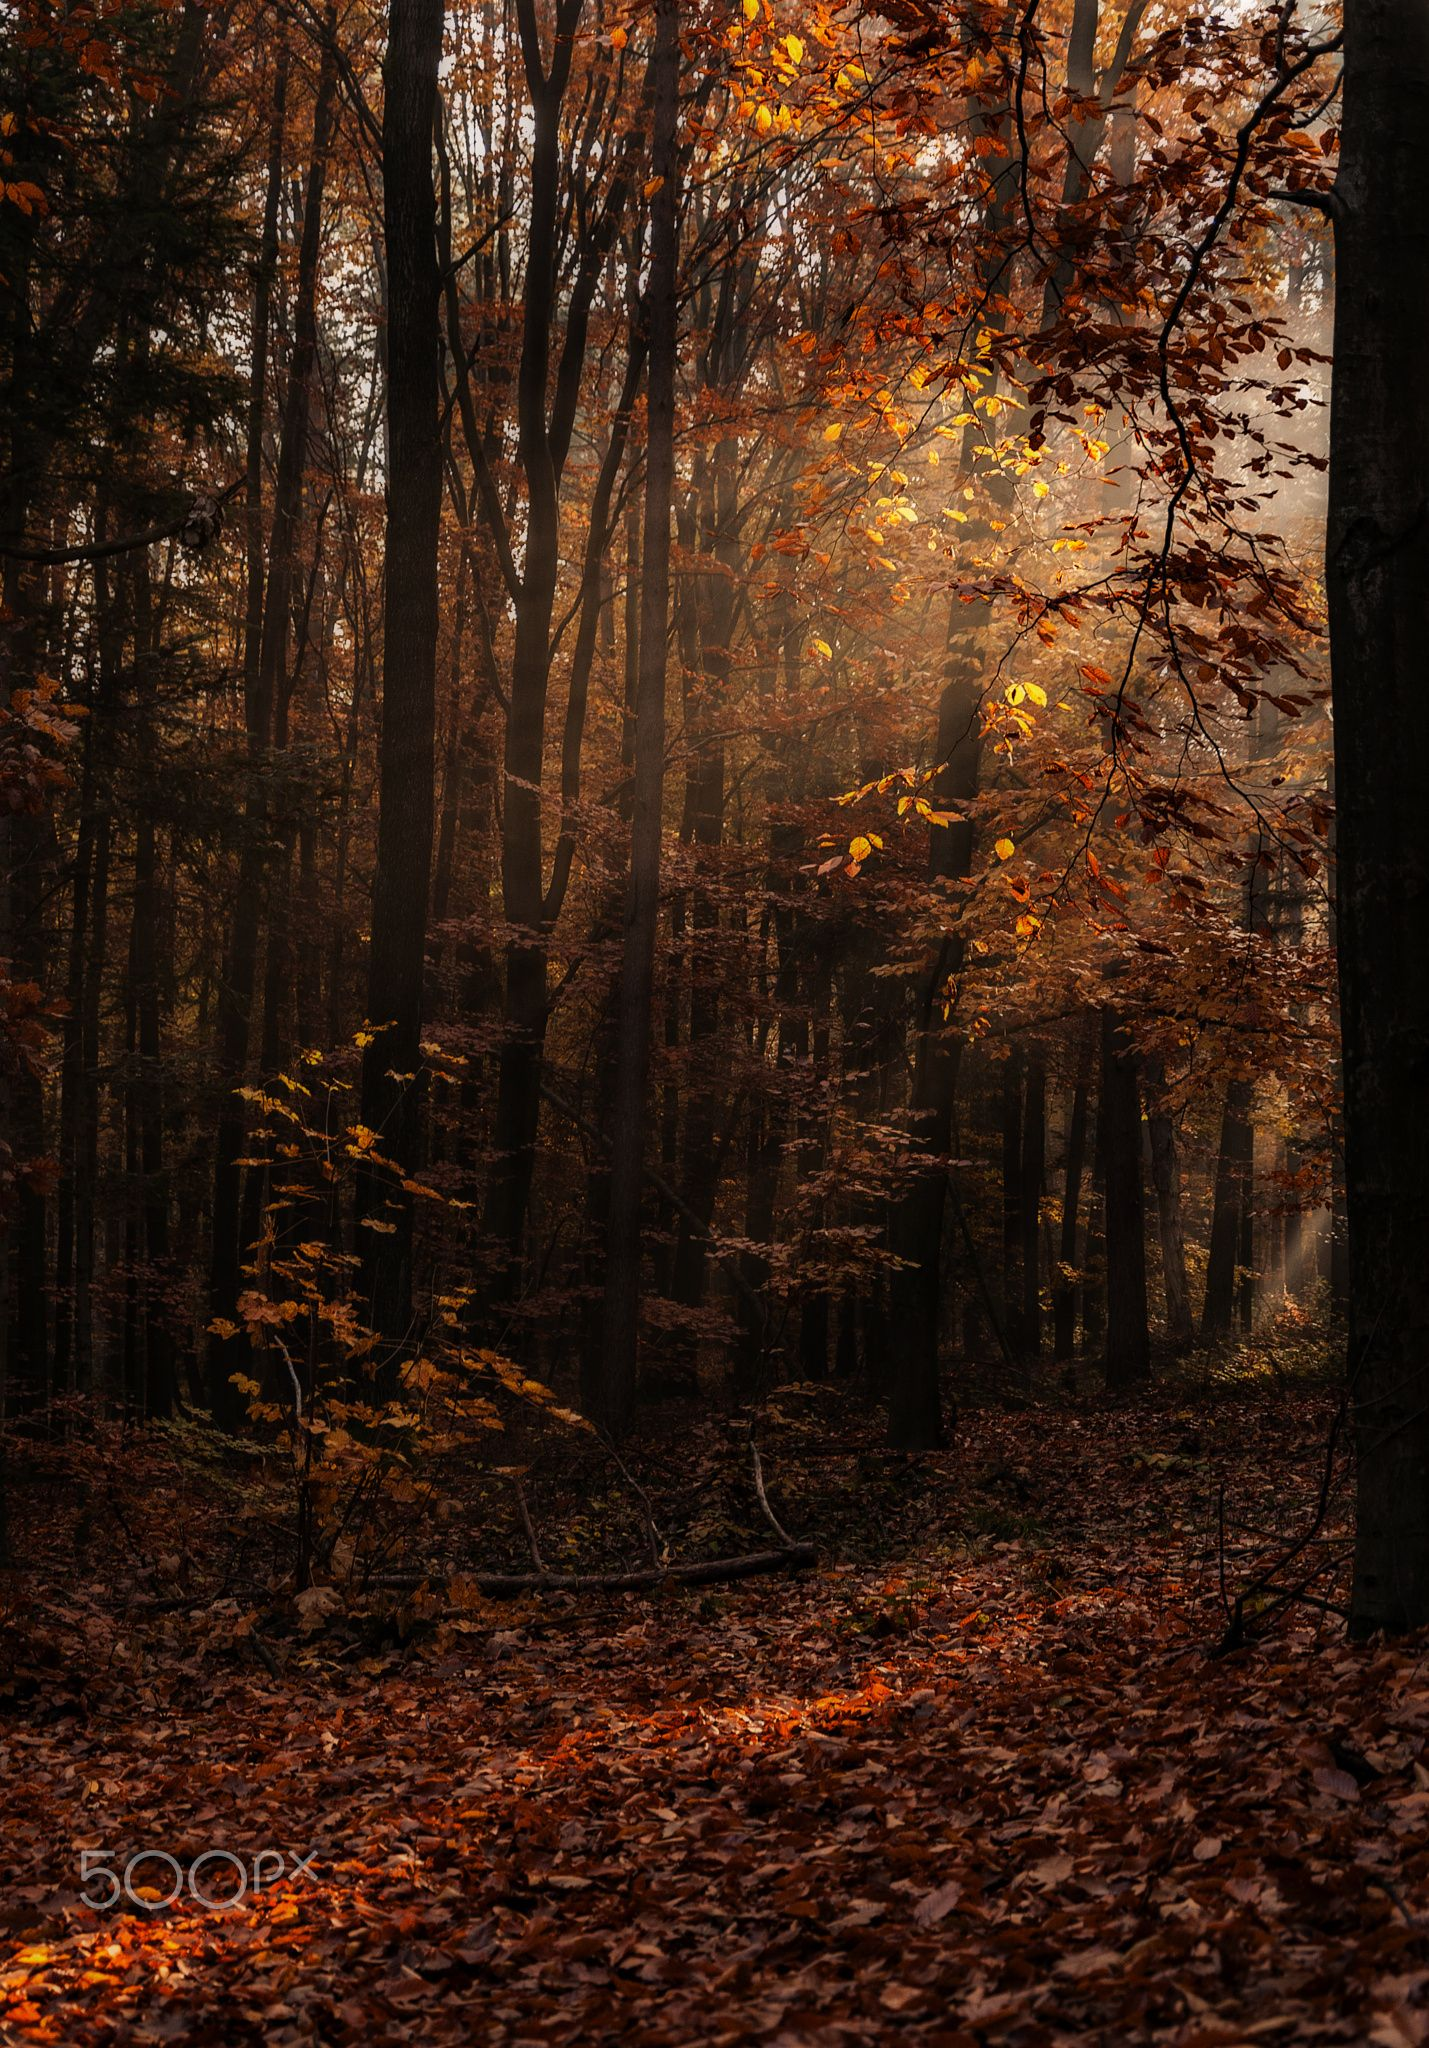 Autumn song by Katarzyna Soluch on 500px